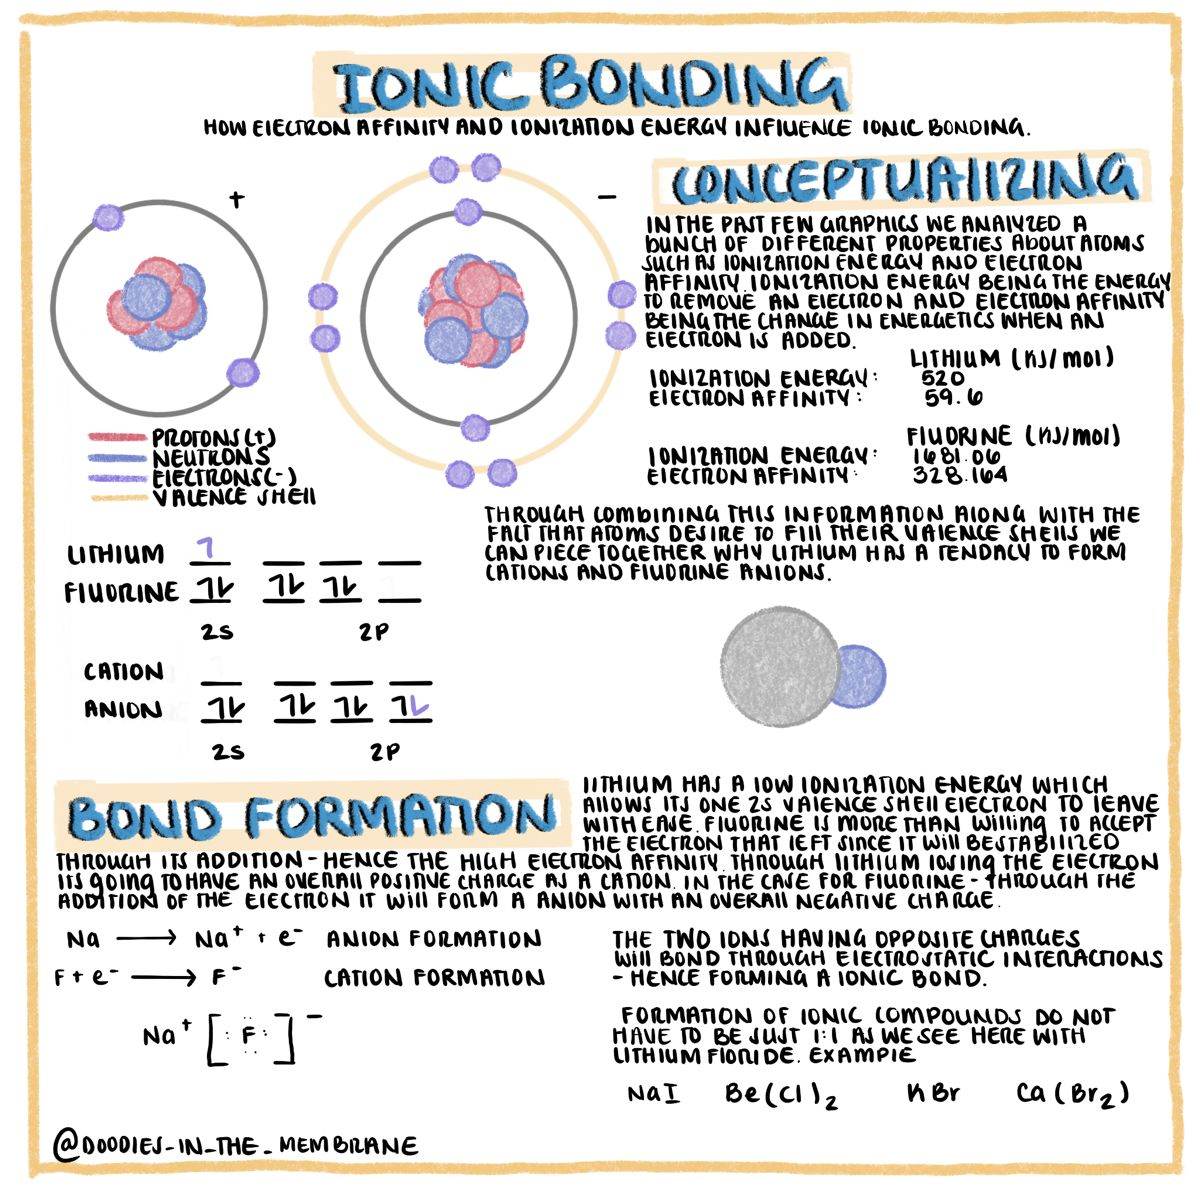 Educational Infographics To Help Students Studying Chemistry And Biology Online In 2020 Medical School Studying Teaching Chemistry School Study Tips